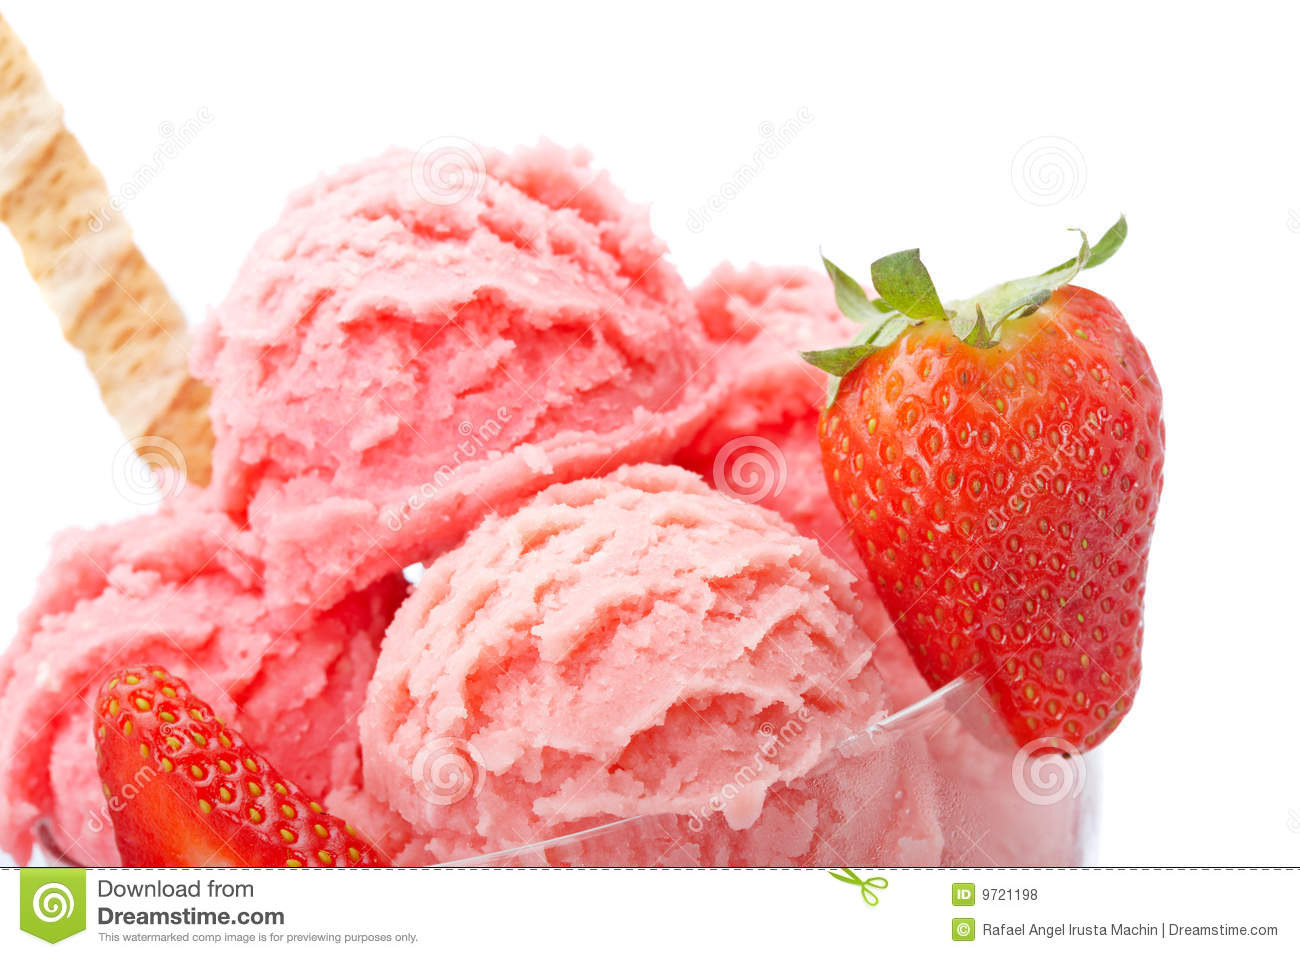 Strawberry Ice Cream Royalty Free Stock Photos - Image: 9721198